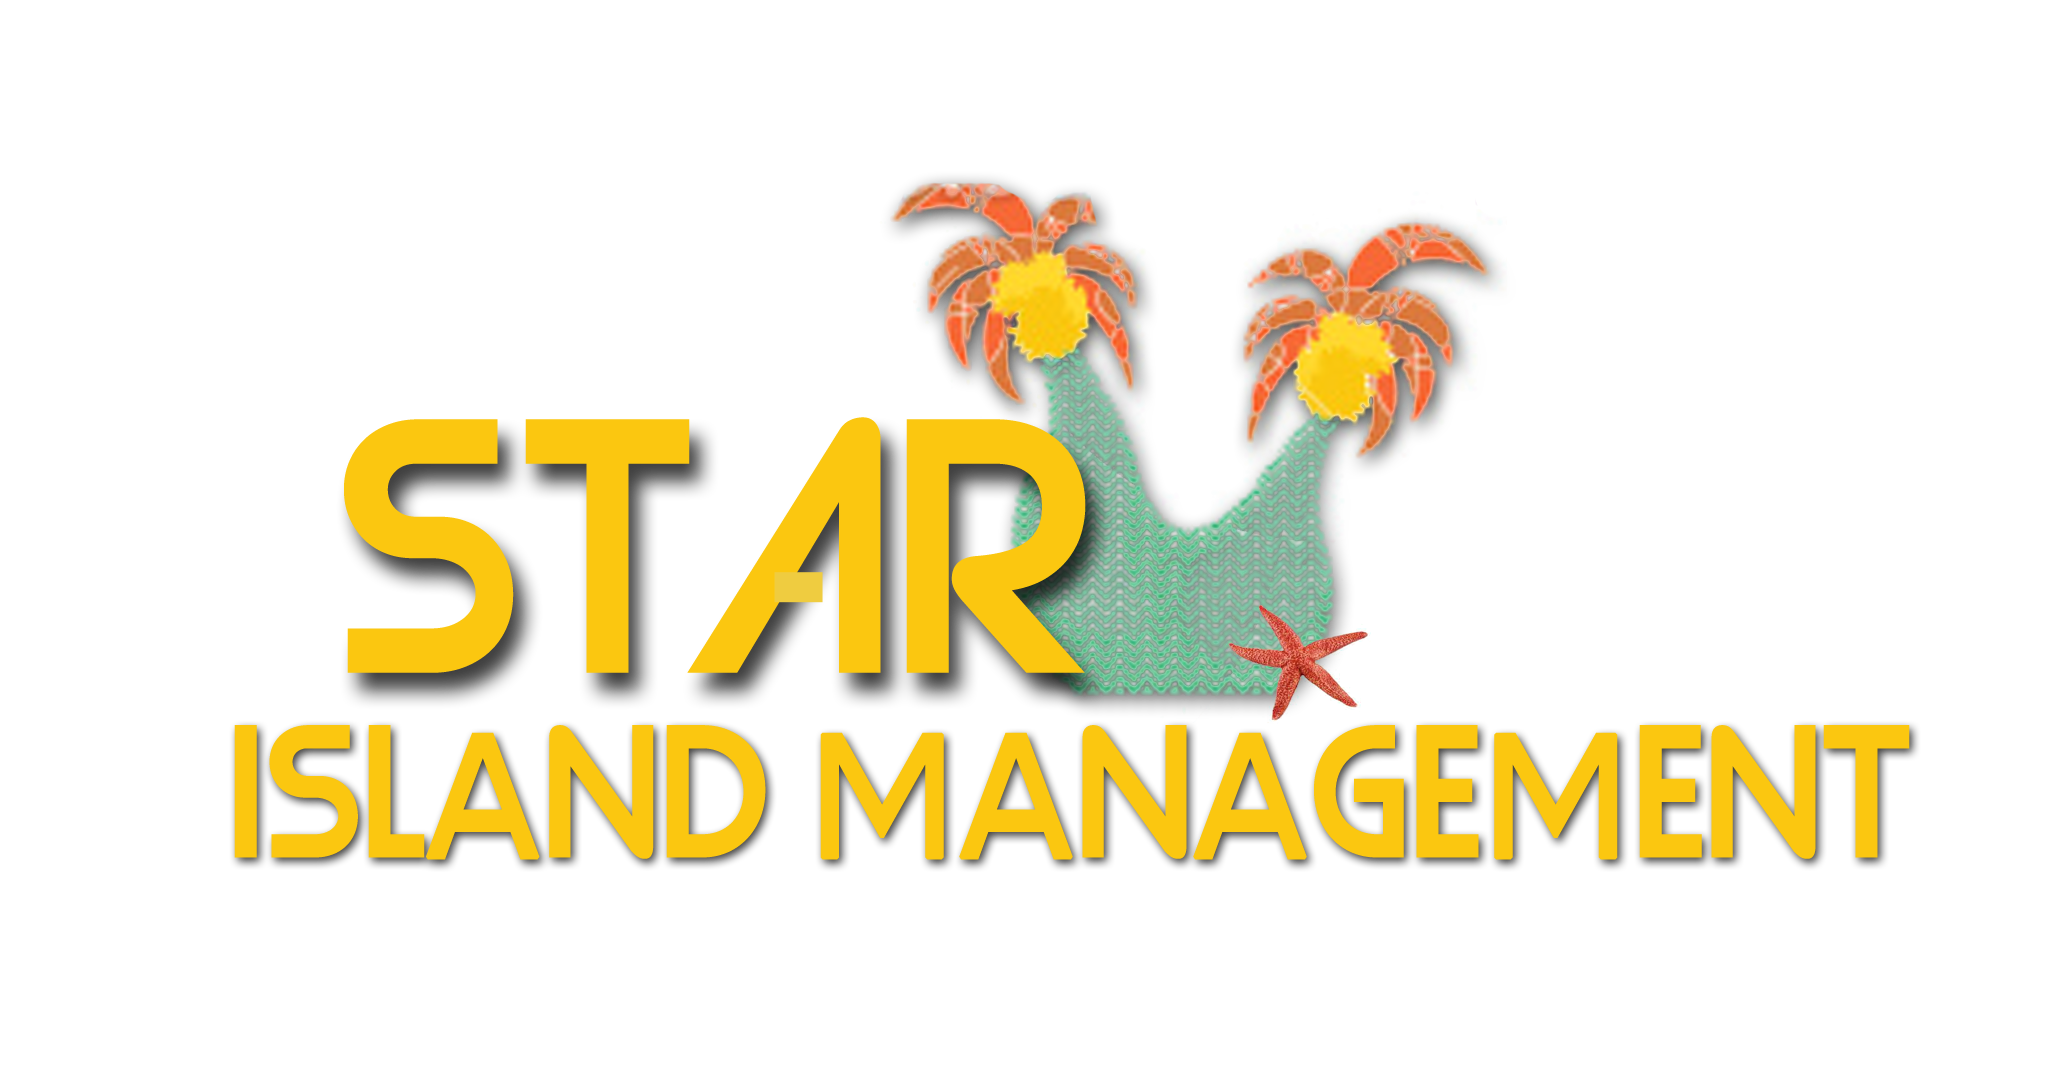 Star Island Management